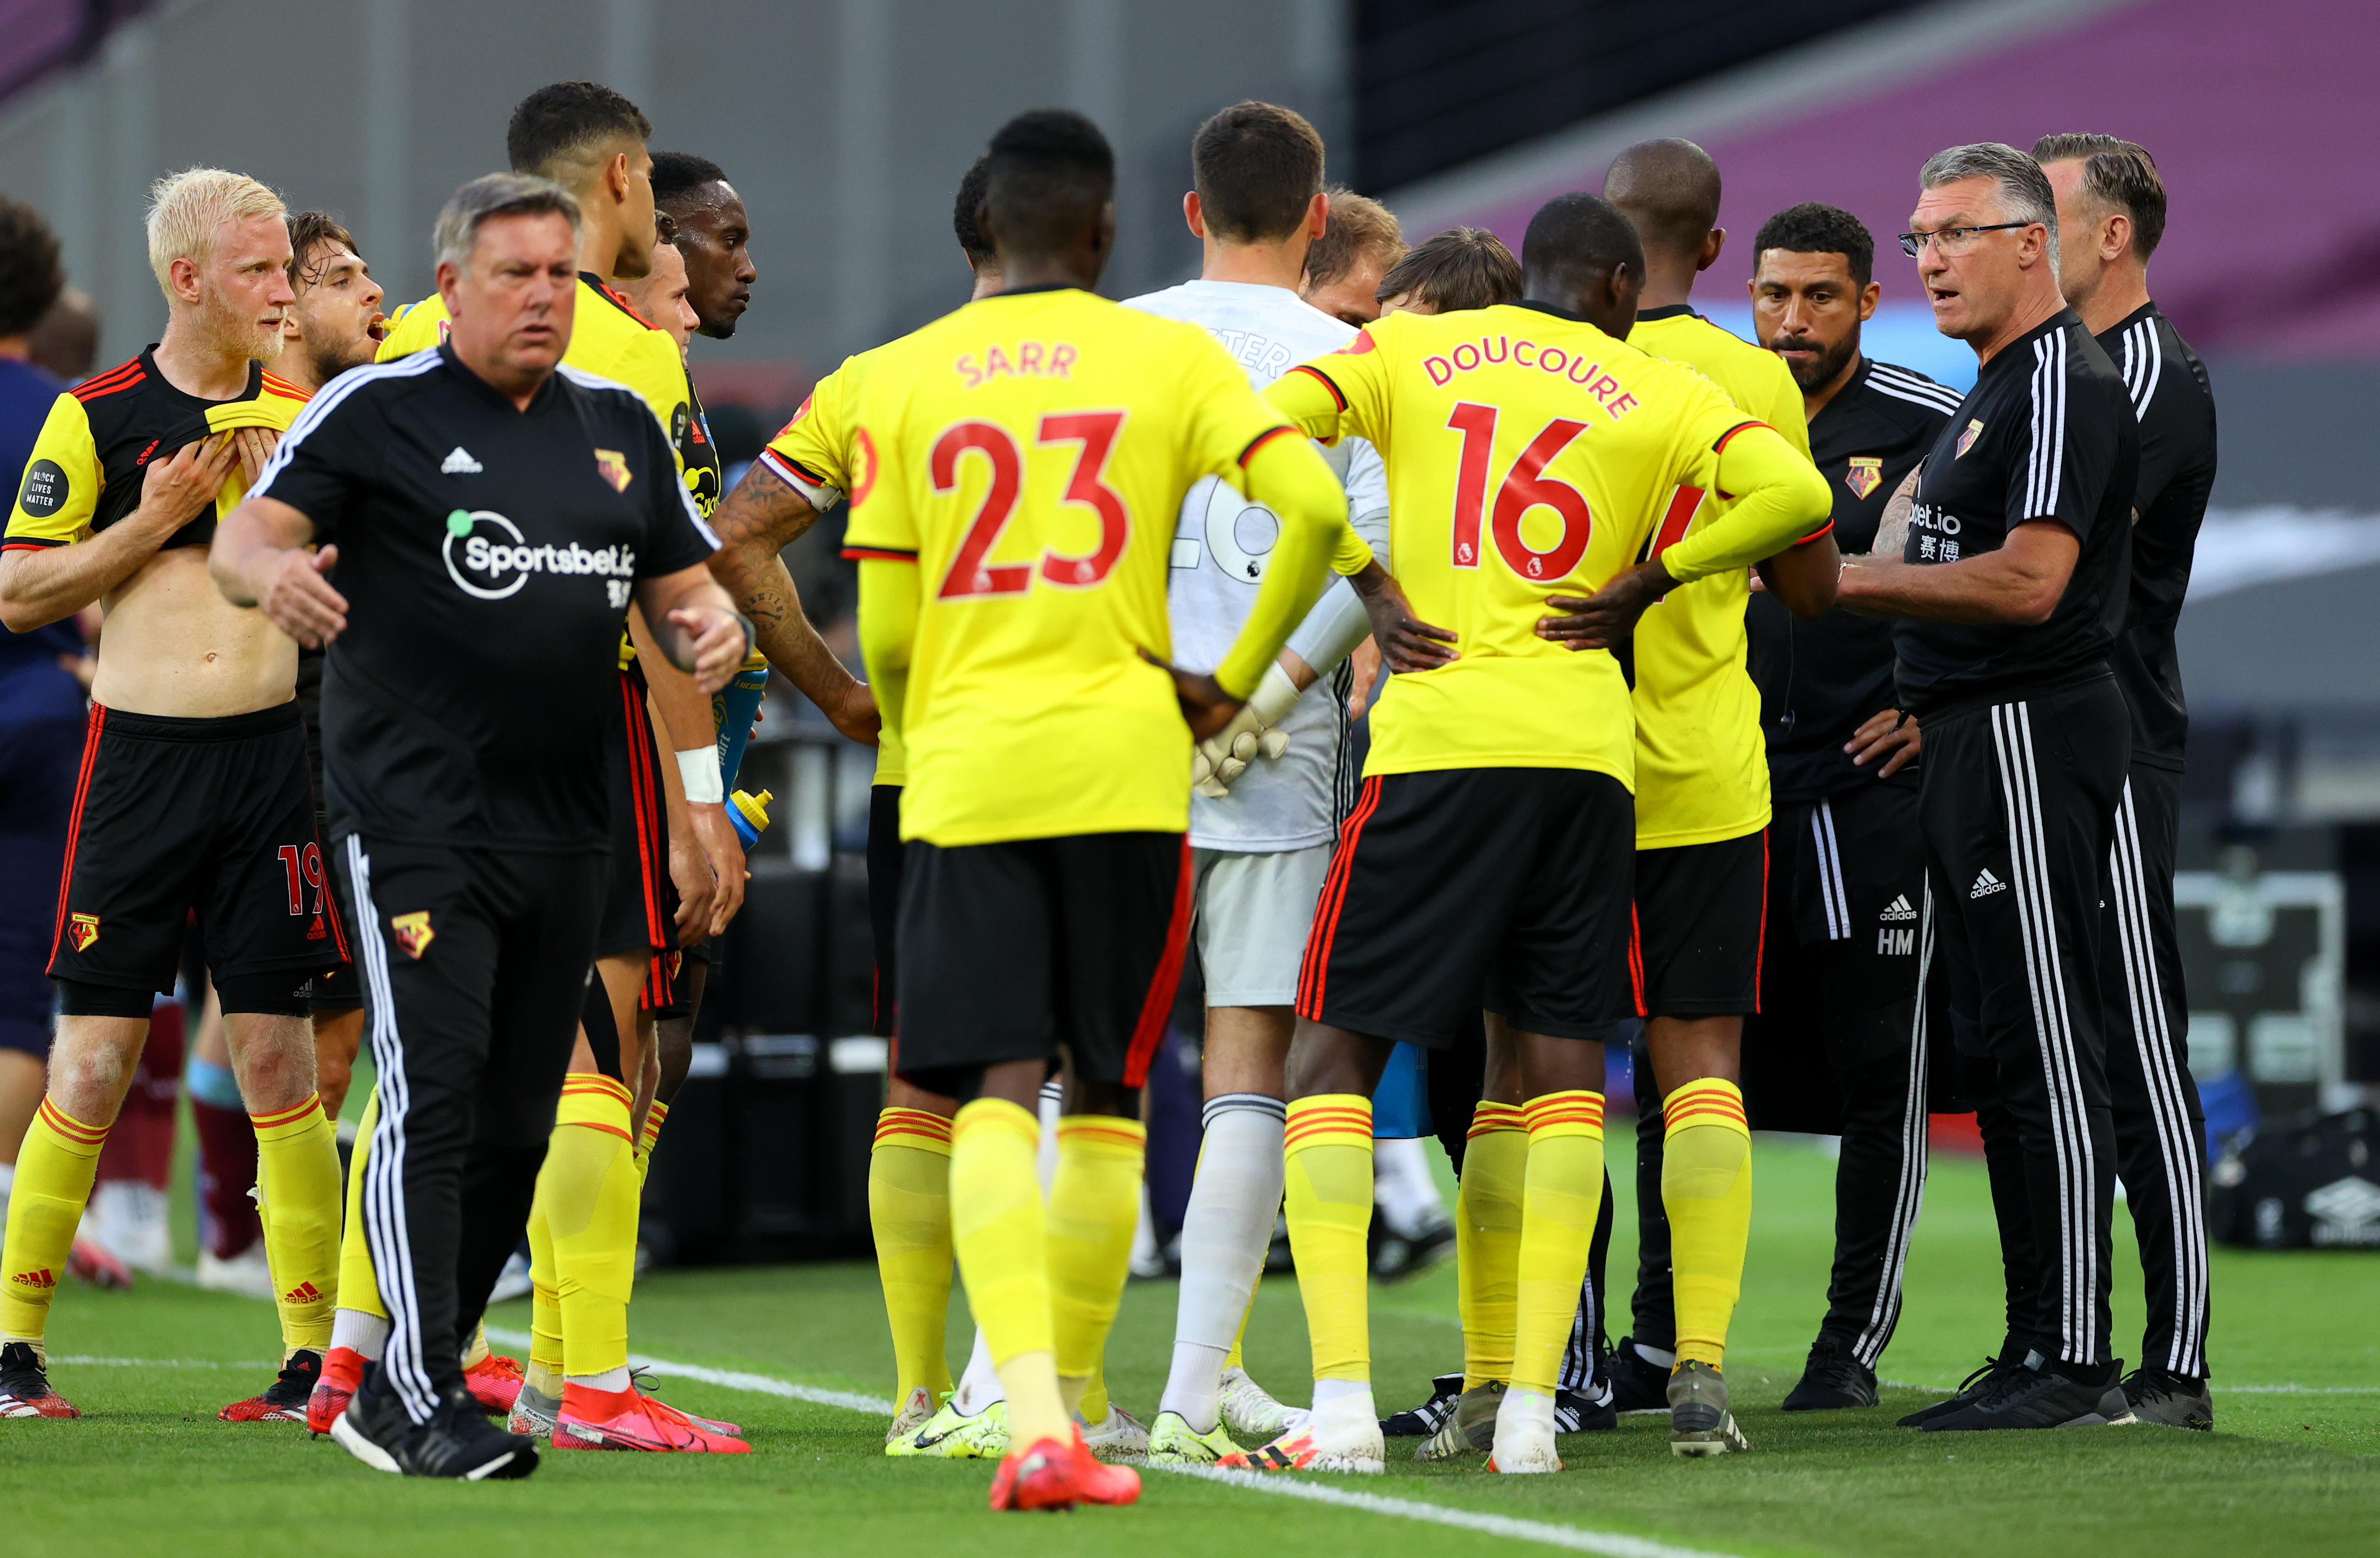 Watford manager Nigel Pearson (right) speaks to his team during a drinks break during the Premier League match at the London Stadium.